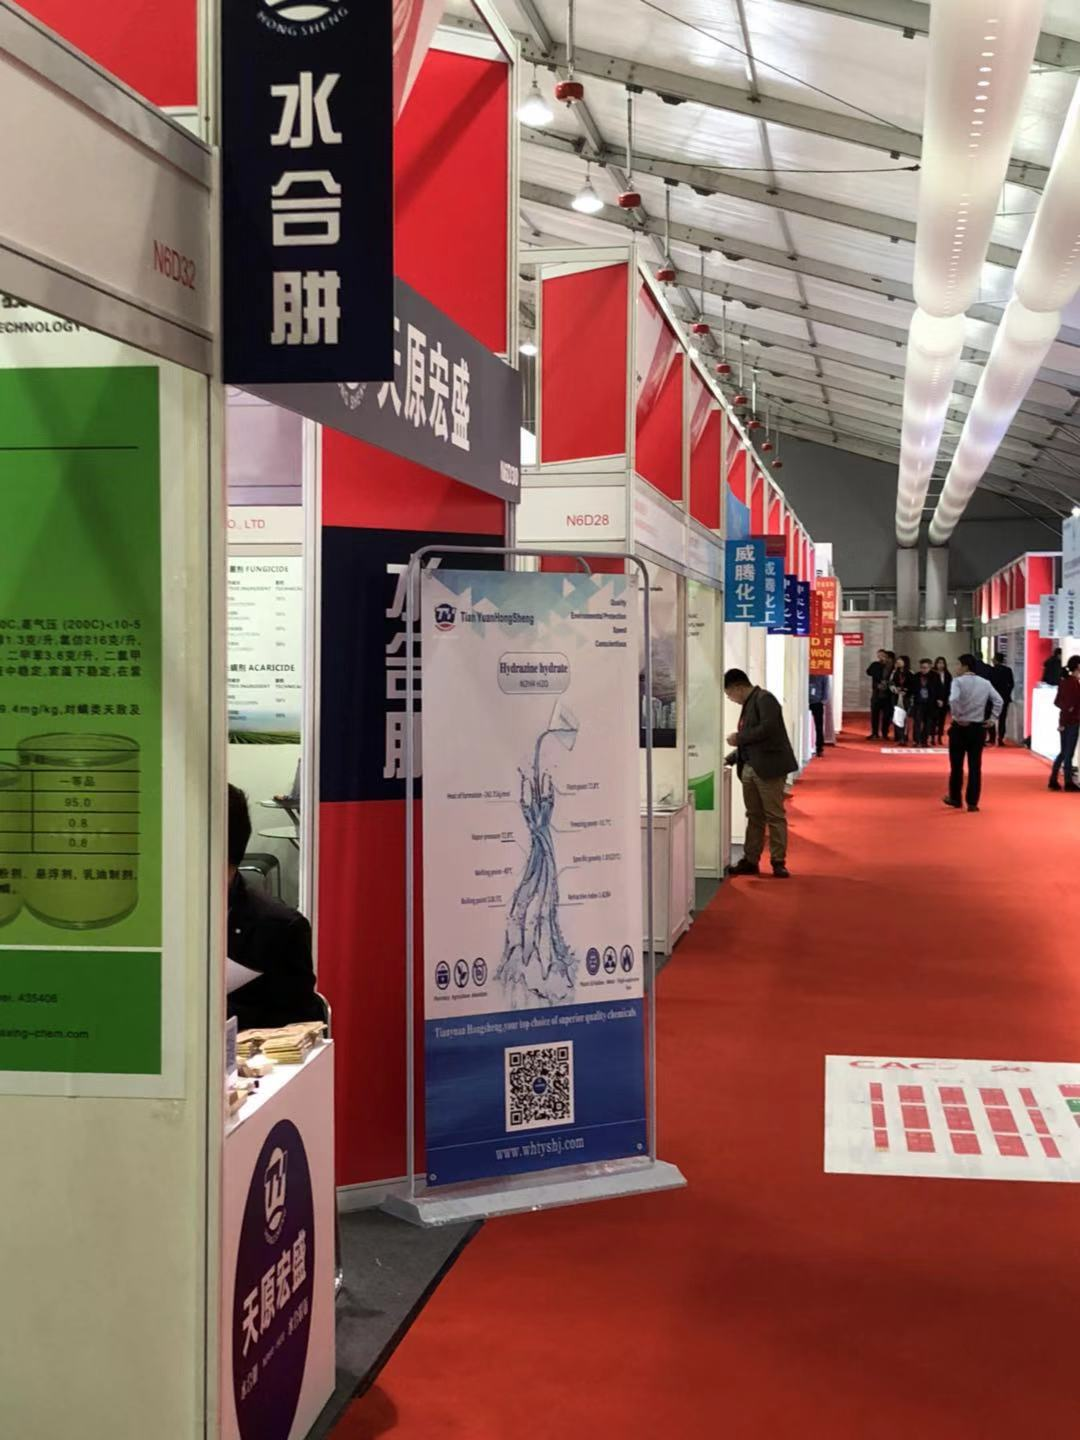 Jinan Forever Chemical attending 20th China International Agrochemical & Crop Protection Exhibition with product of OAP,ADC,OB-1,FP-127,Glycine betaine,FeCl3